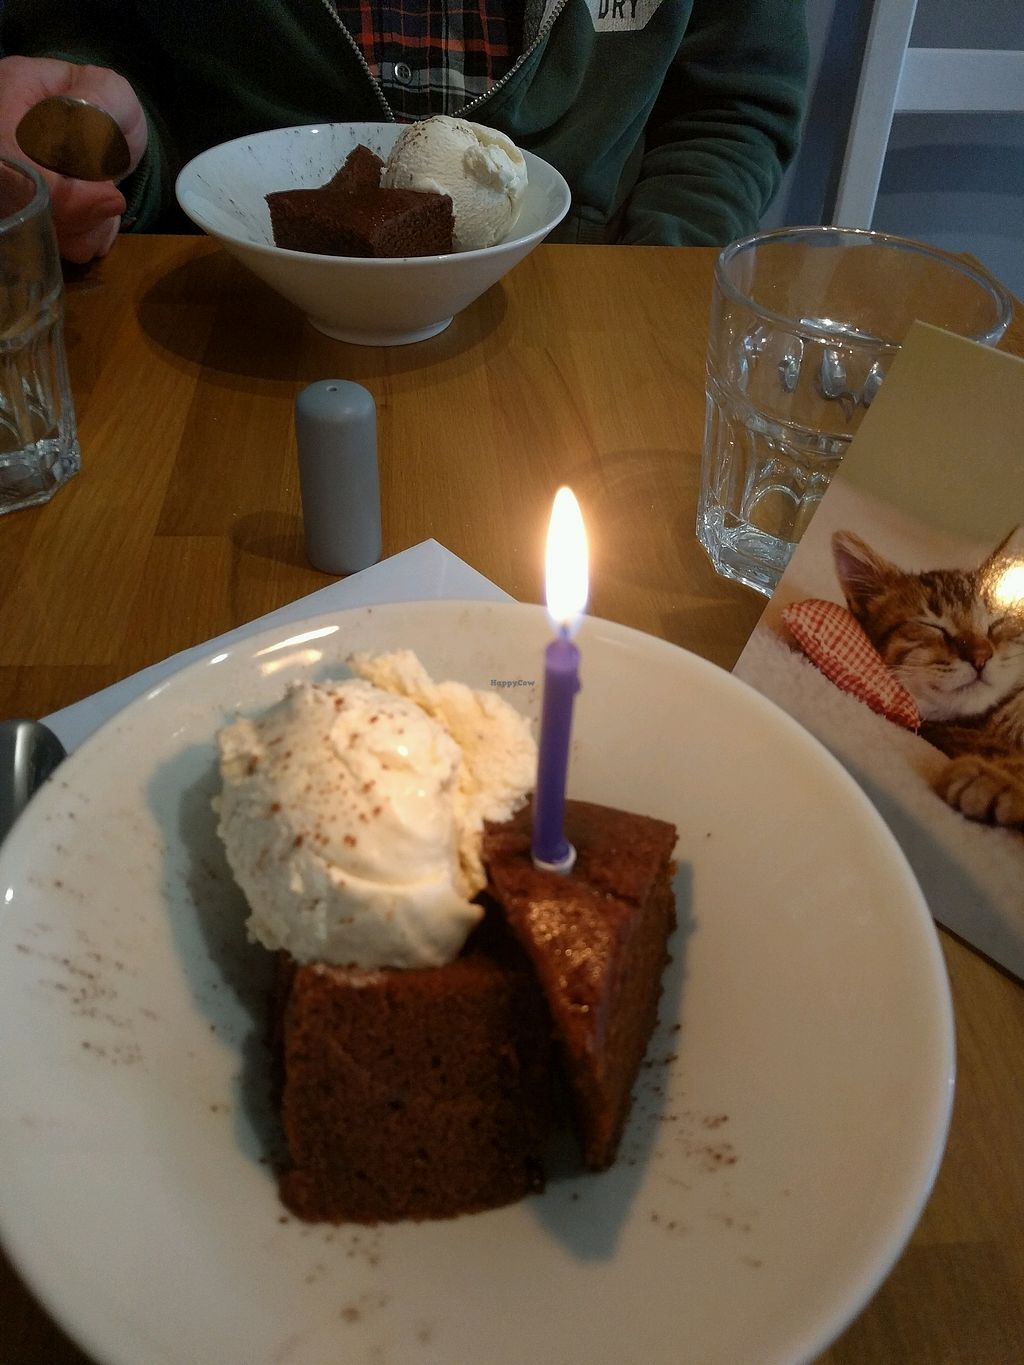 """Photo of Potato Tomato - The Eatery  by <a href=""""/members/profile/ZolaSpud"""">ZolaSpud</a> <br/>Birthday brownie! <br/> September 11, 2017  - <a href='/contact/abuse/image/97735/303187'>Report</a>"""